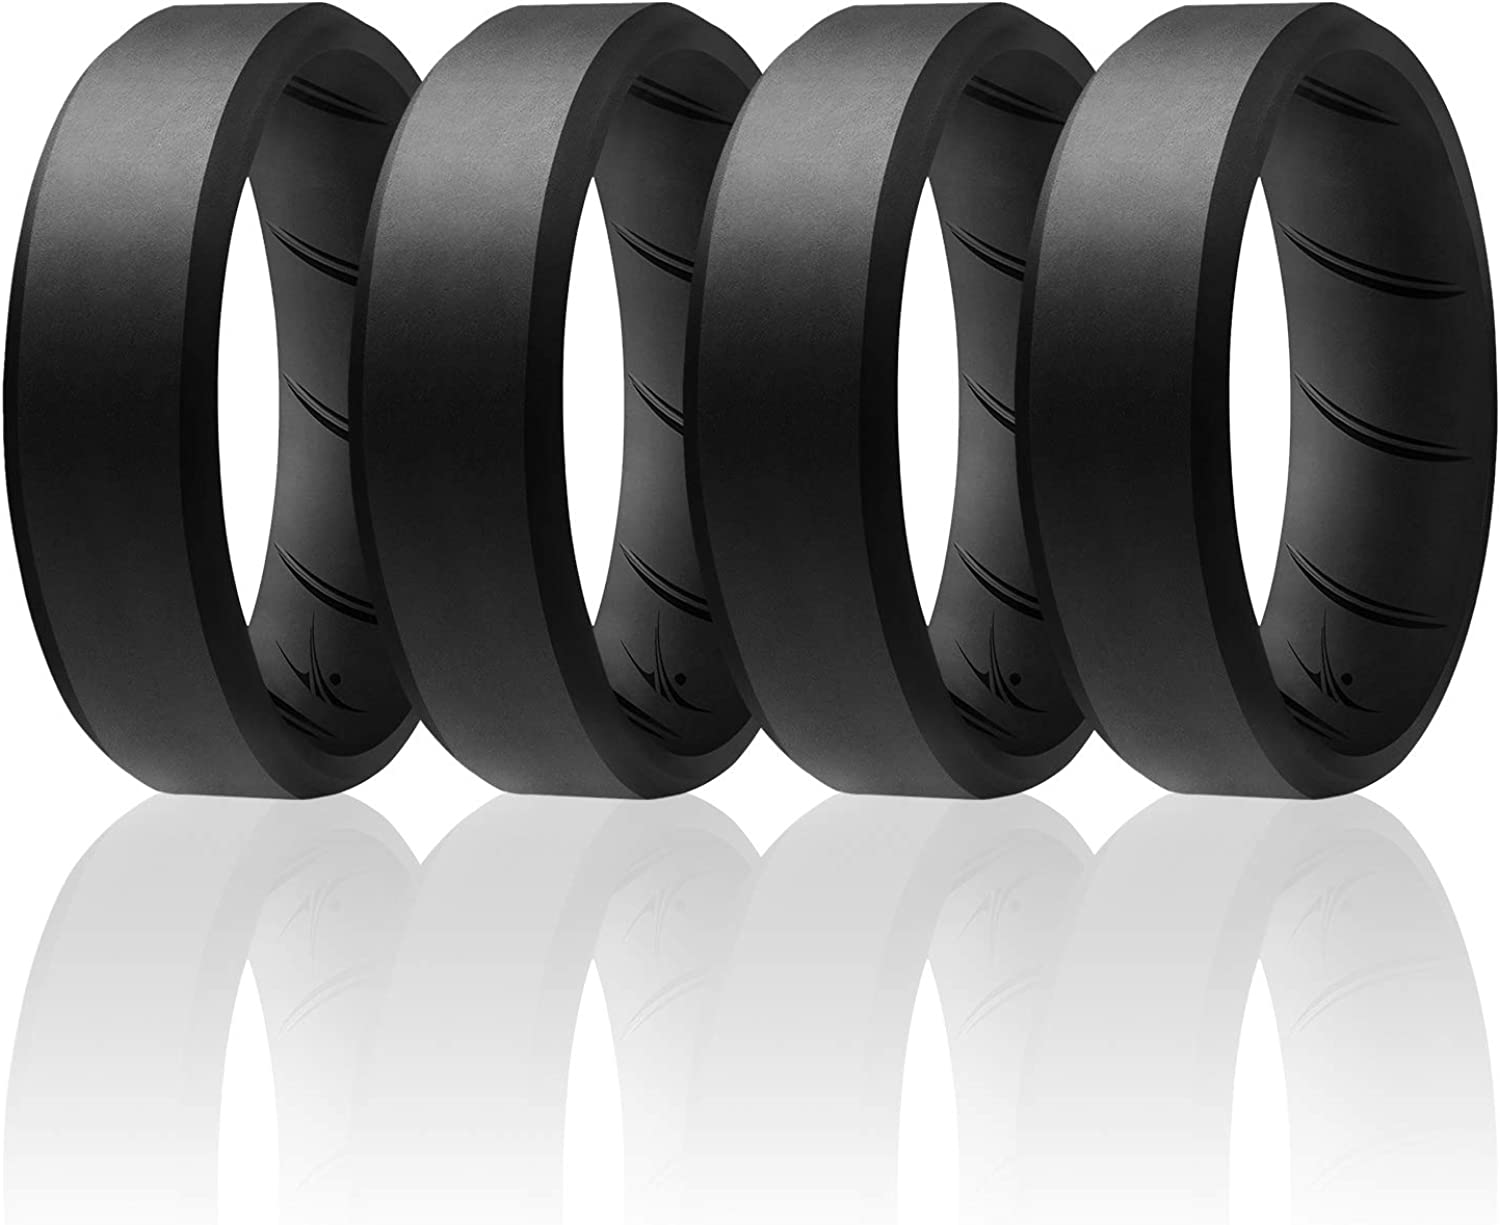 8mm Beveled Breathable Silicone Rings with Comfort Fit Air Flow Design Comes in 1//4//6 Packs ROQ Silicone Ring for Men Mens Silicone Rubber Medical Grade Bands Safe Wedding Rings for Men